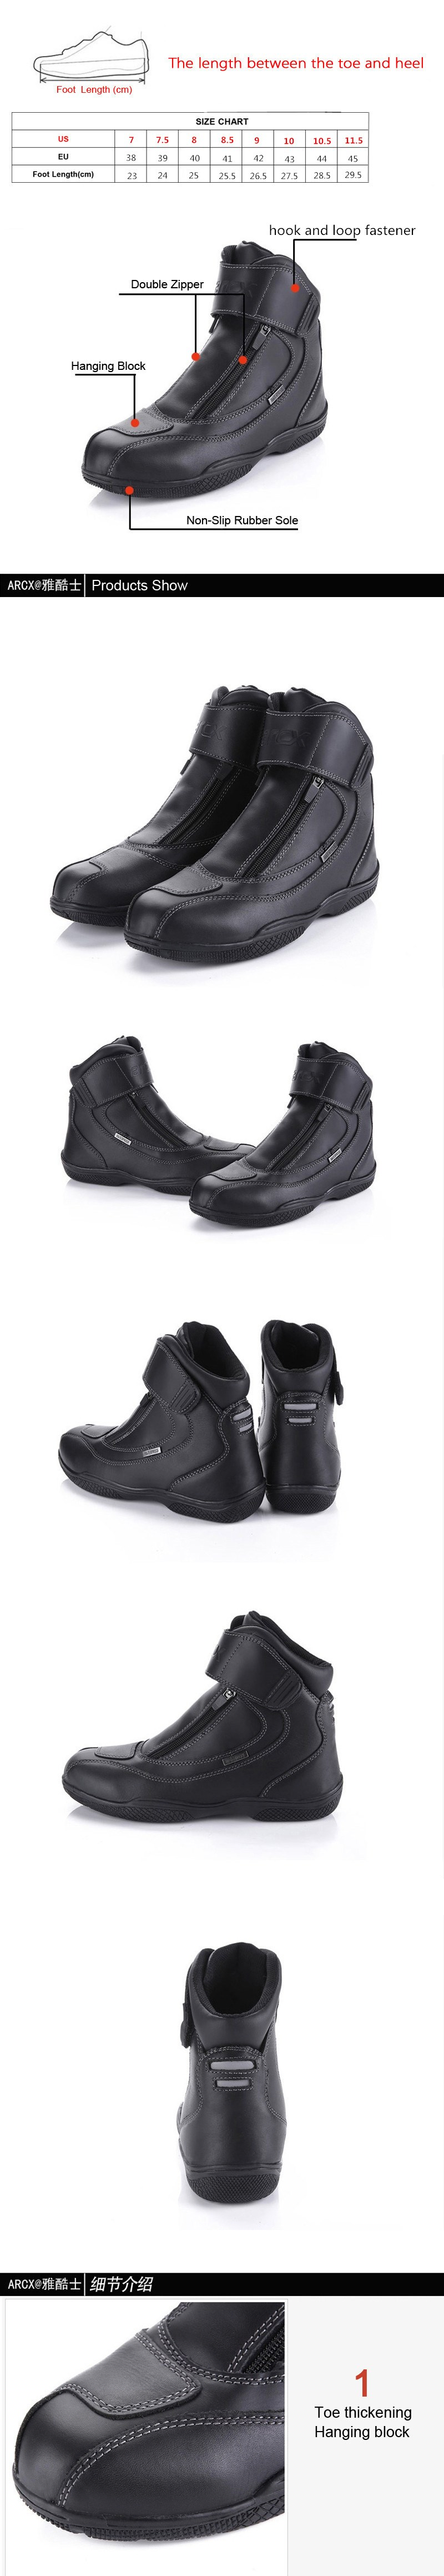 Motorcycle-Boots-Genuine-Cow-Leather-Waterproof-Anti-skid-Fashion-Design-Moto-Racing-Boots-Motorbike-Touring-Riding.jpg_640x640